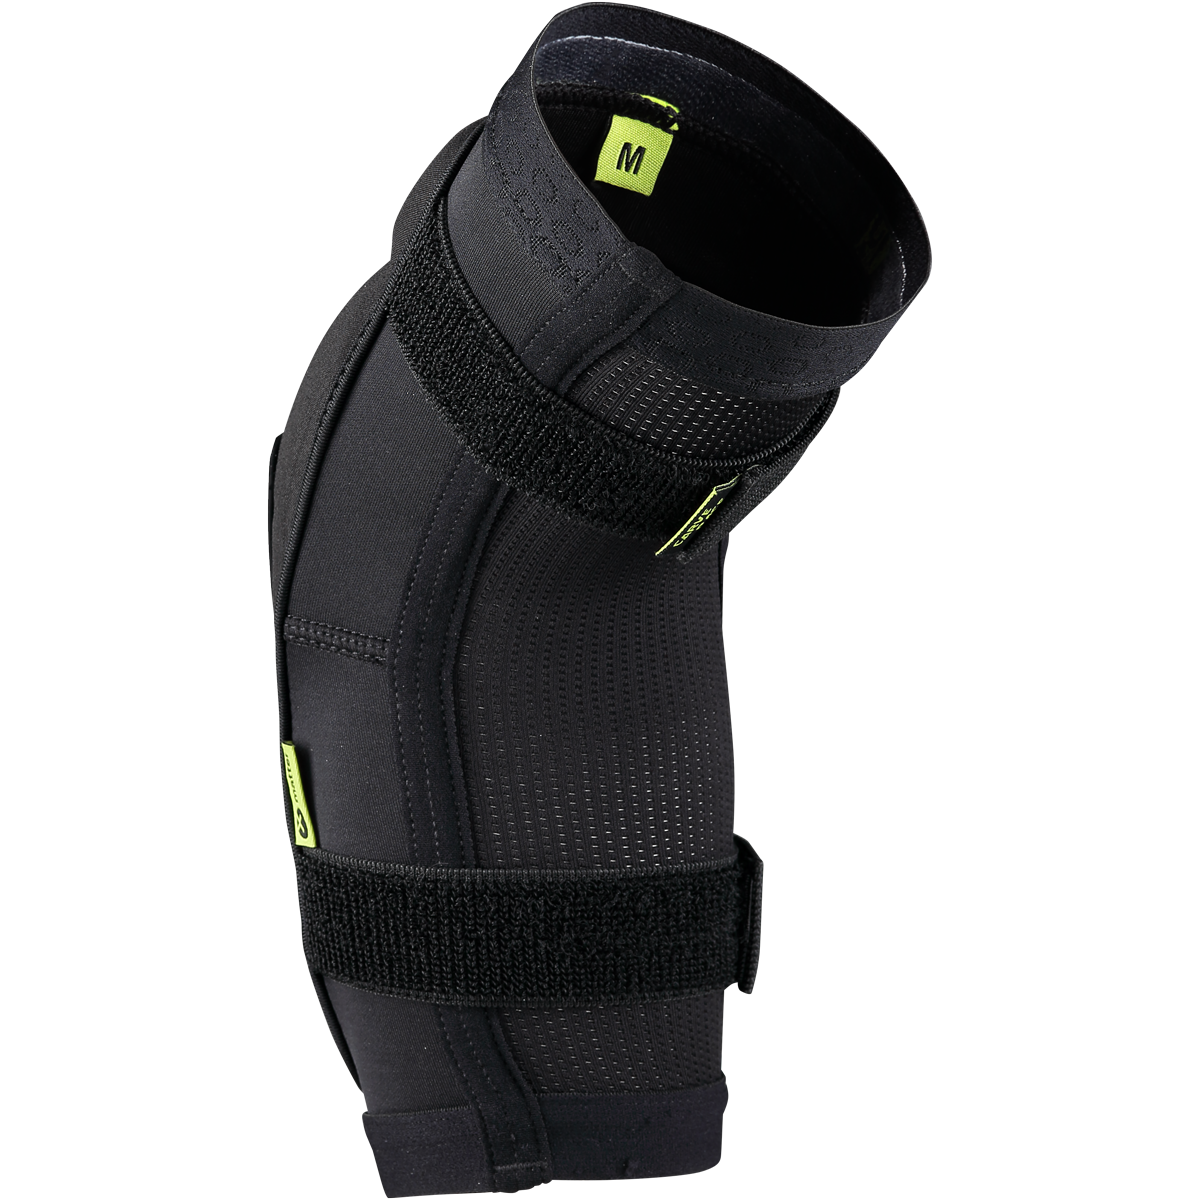 Elbow And Knee Protector Type B Level 1 B1 IXS Shoulder